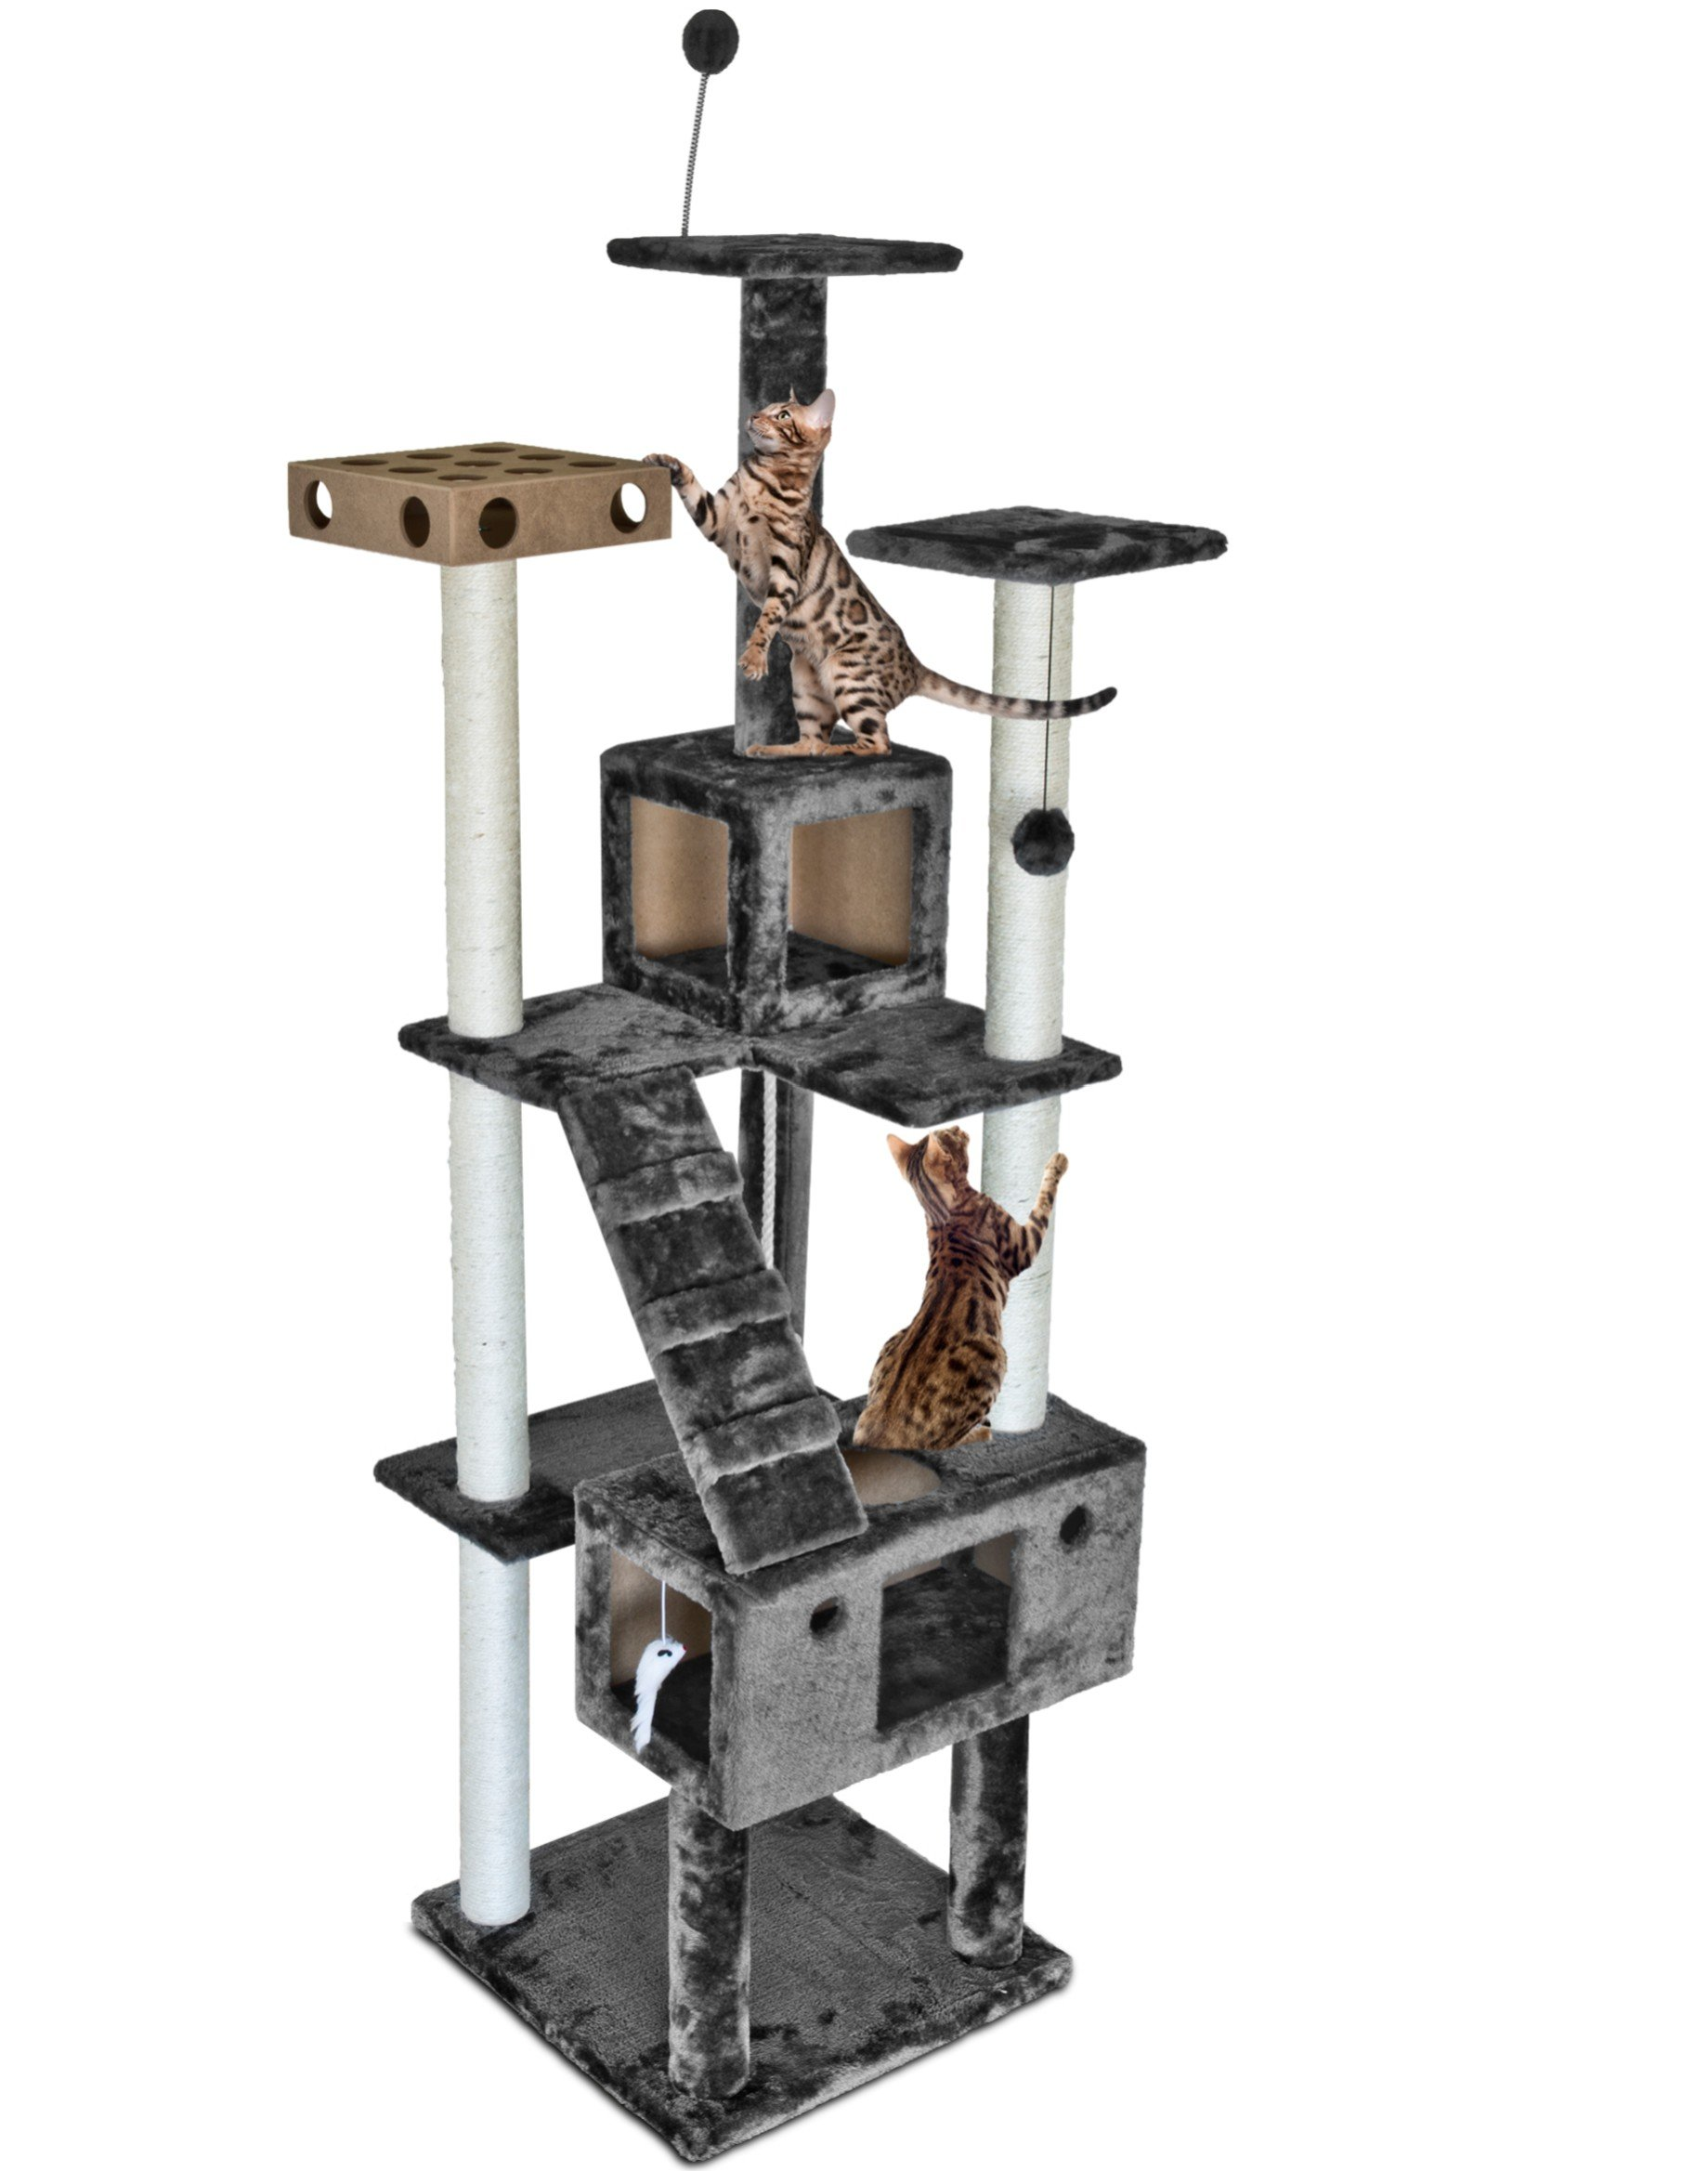 Furhaven Tiger Tough Cat Tree House Furniture for Cats and Kittens, Double Decker Playground, Gray